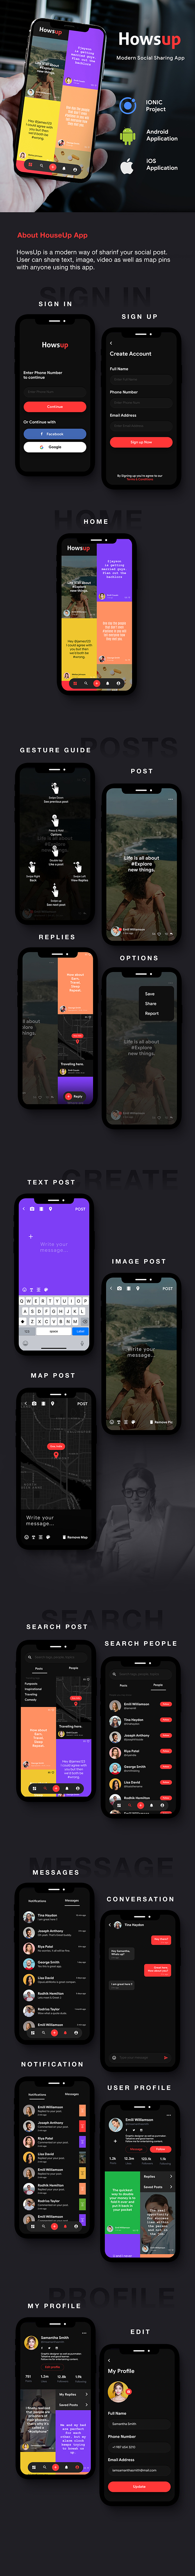 Howsup Social Android App + Social iOS App | Template (HTML + CSS in IONIC 5) - 3